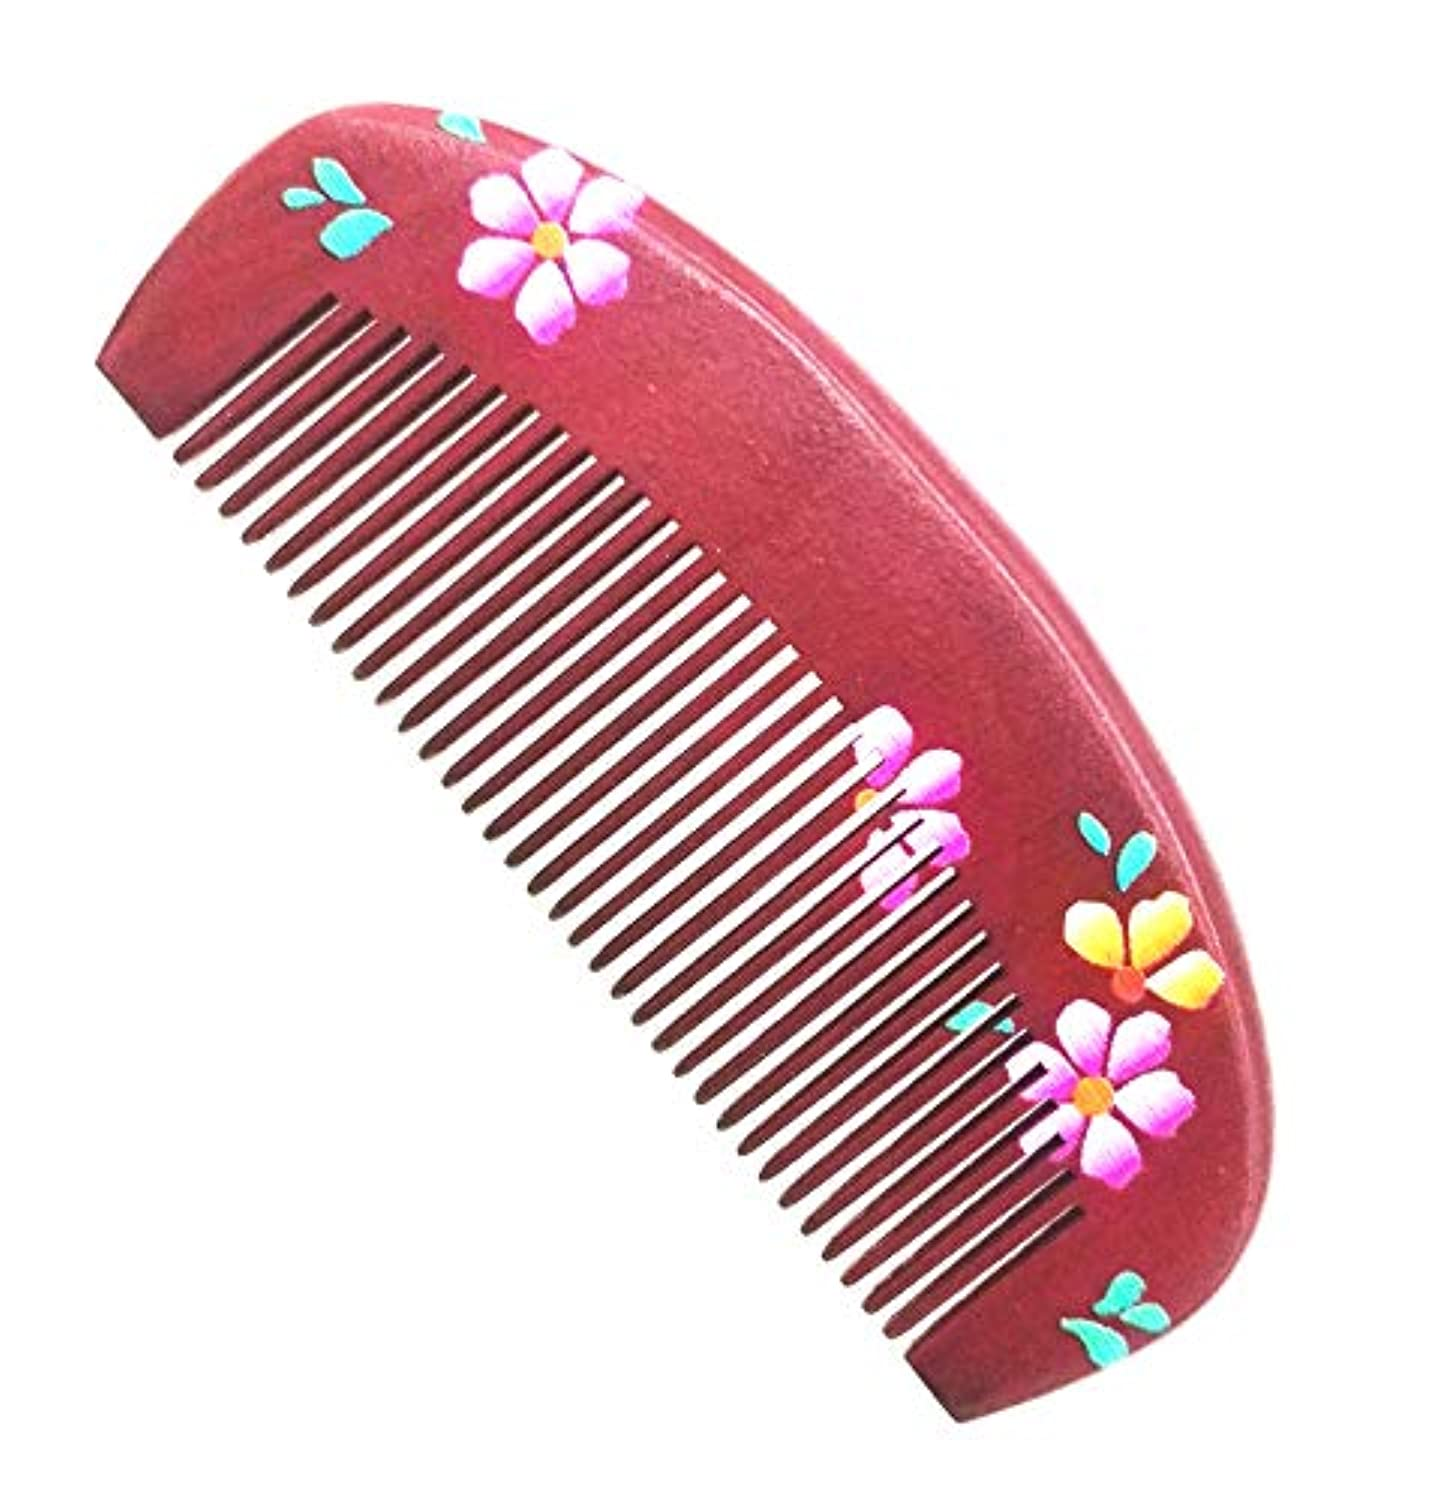 Hair Beard Pick Wooden Comb – natural peach wood